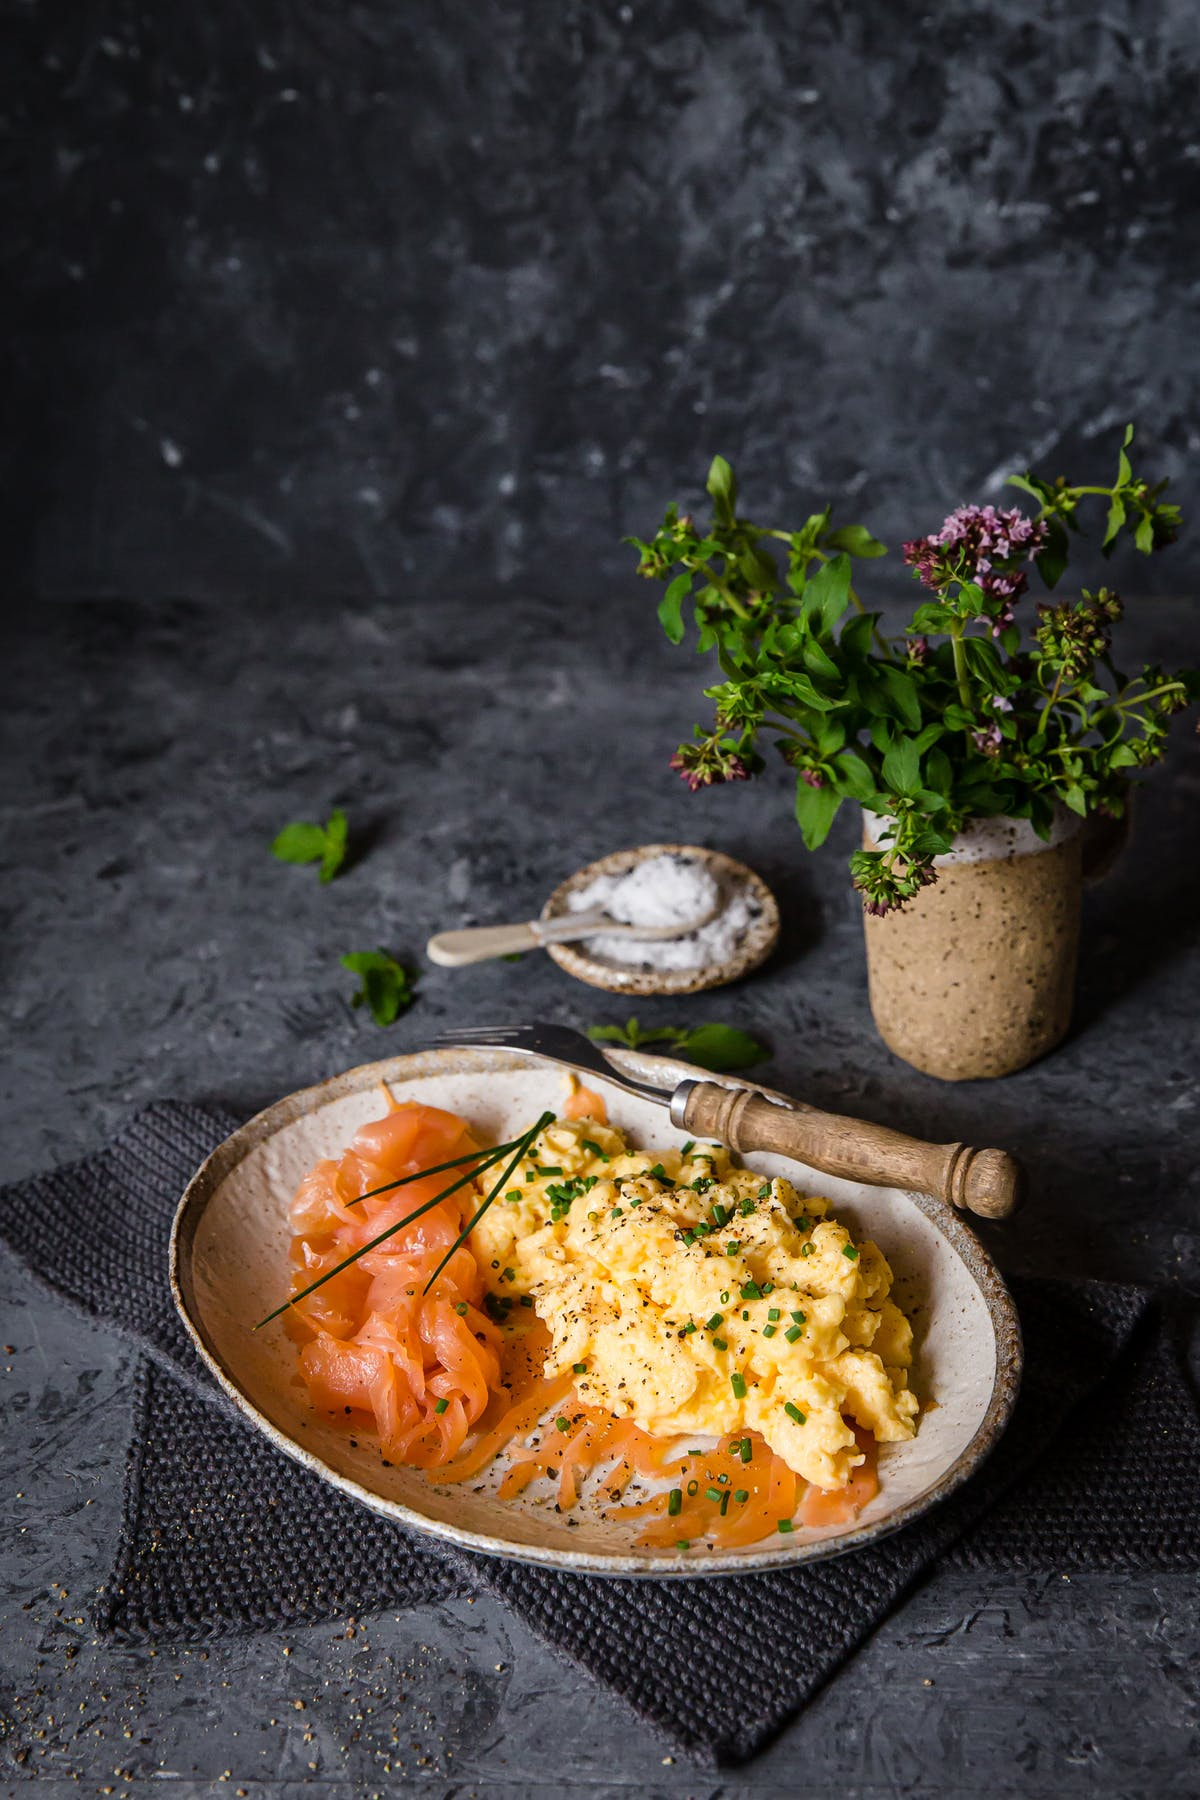 Cured salmon with scrambled eggs and chives